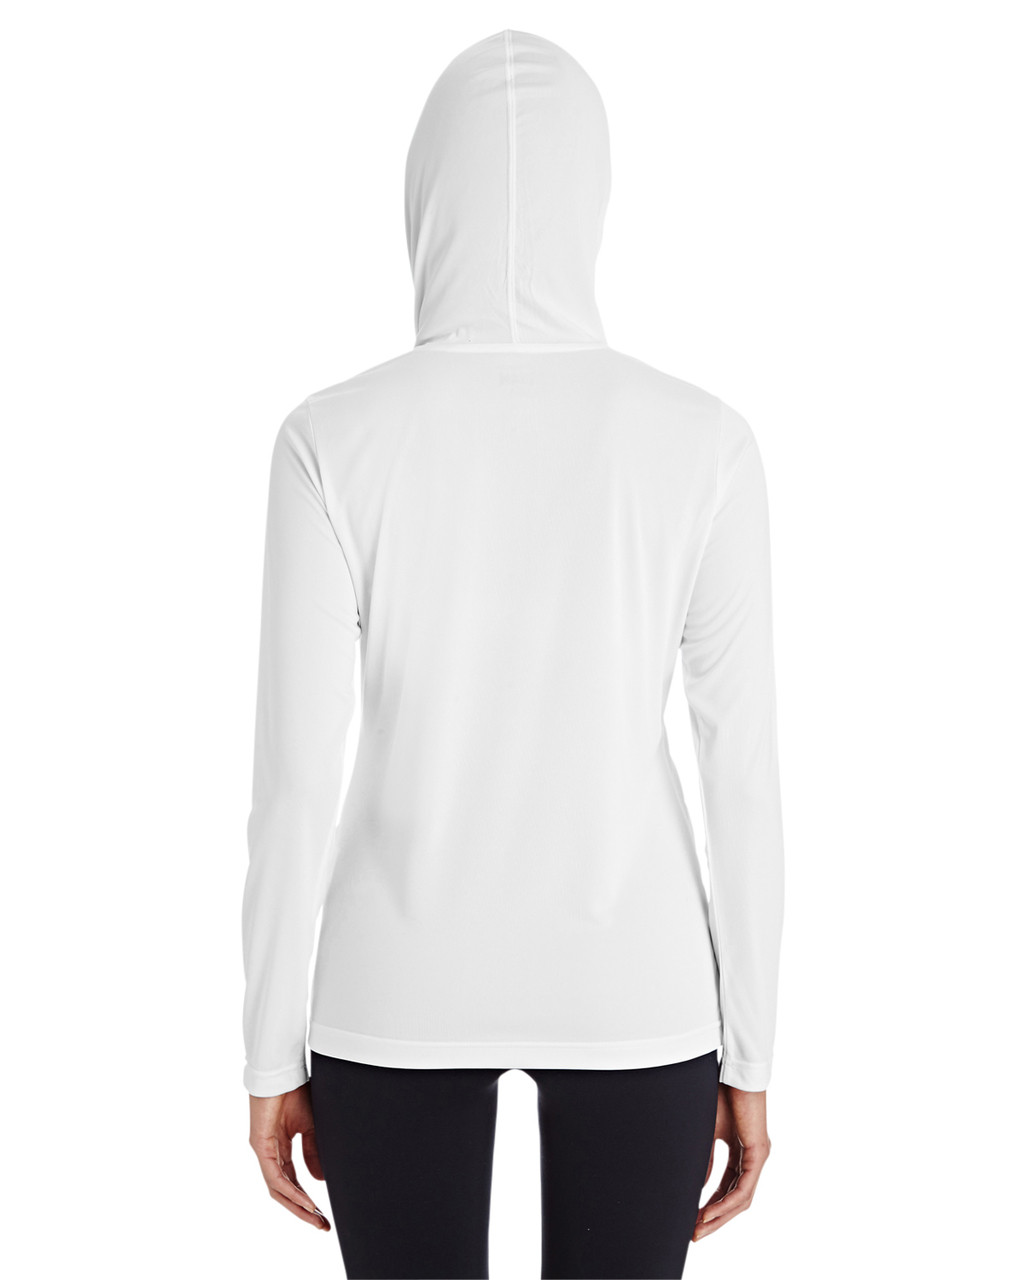 White - TT41W Team 365 Ladies' Zone Performance Hoodie